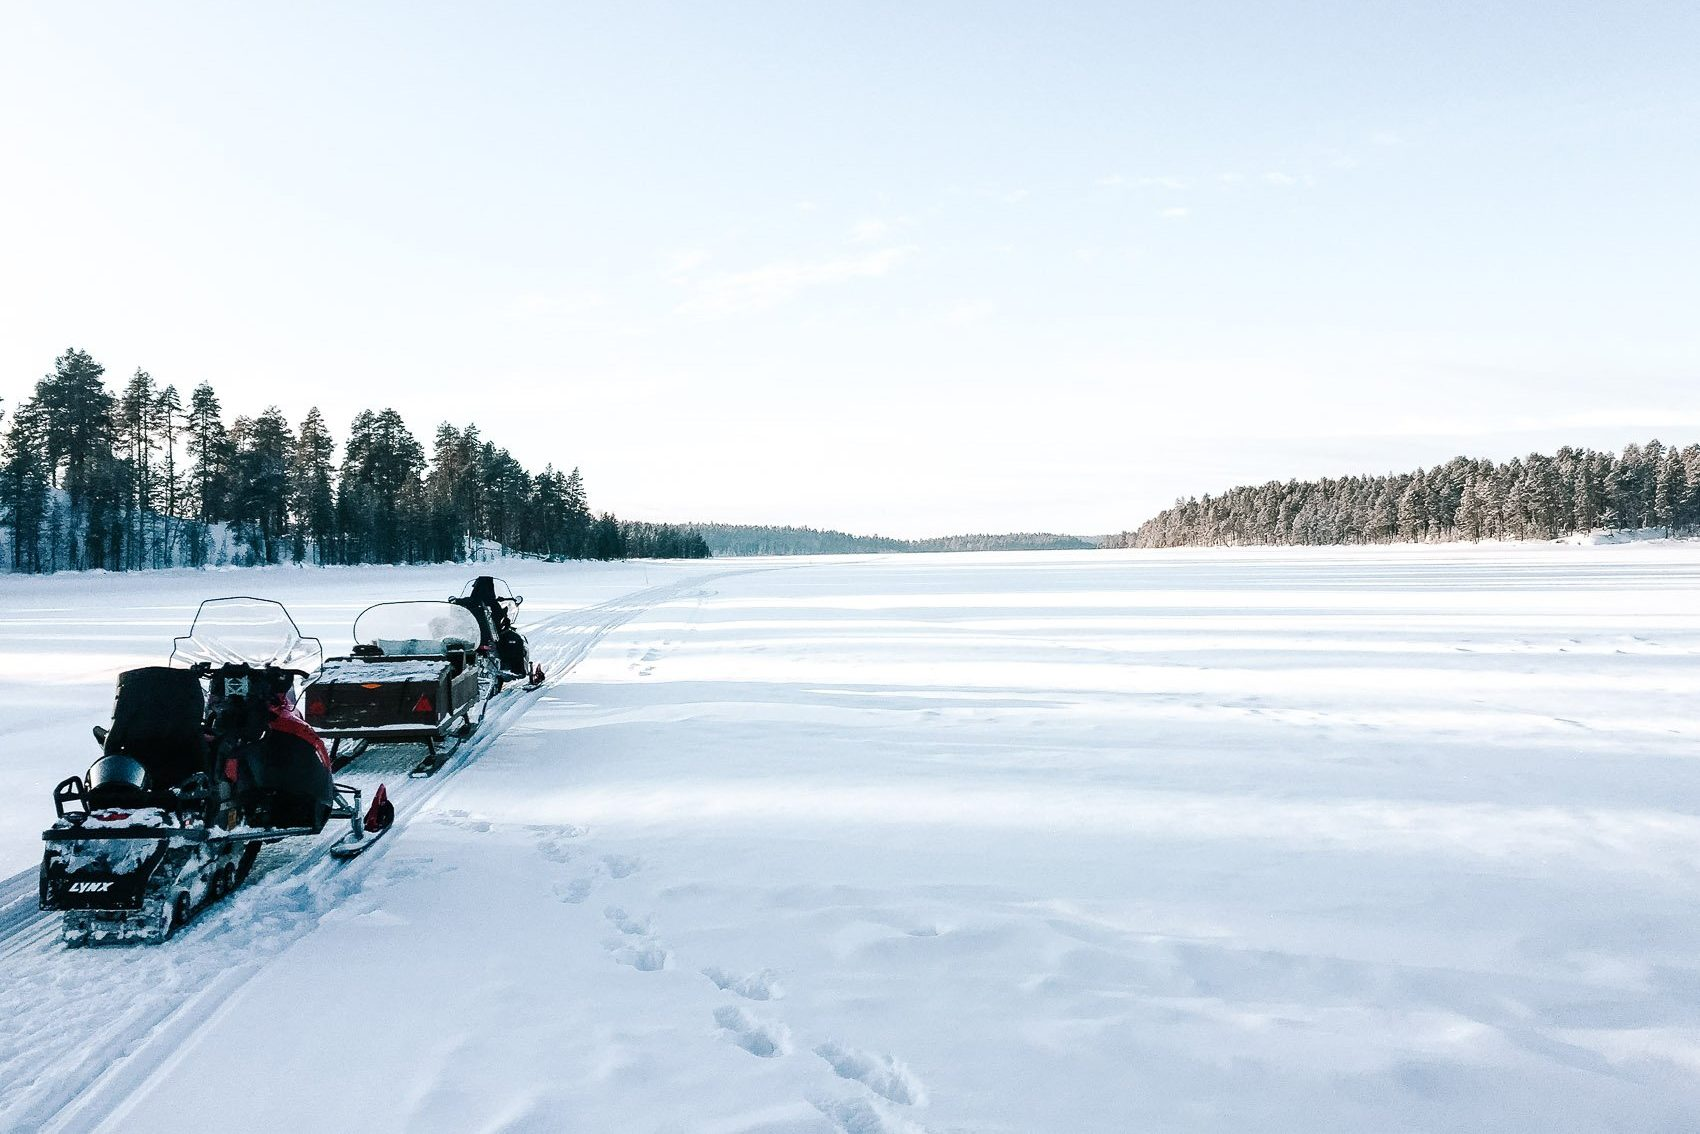 snowmobile on snow covered frozen lake in Finnish Lapland near Russian border - bucket list travel